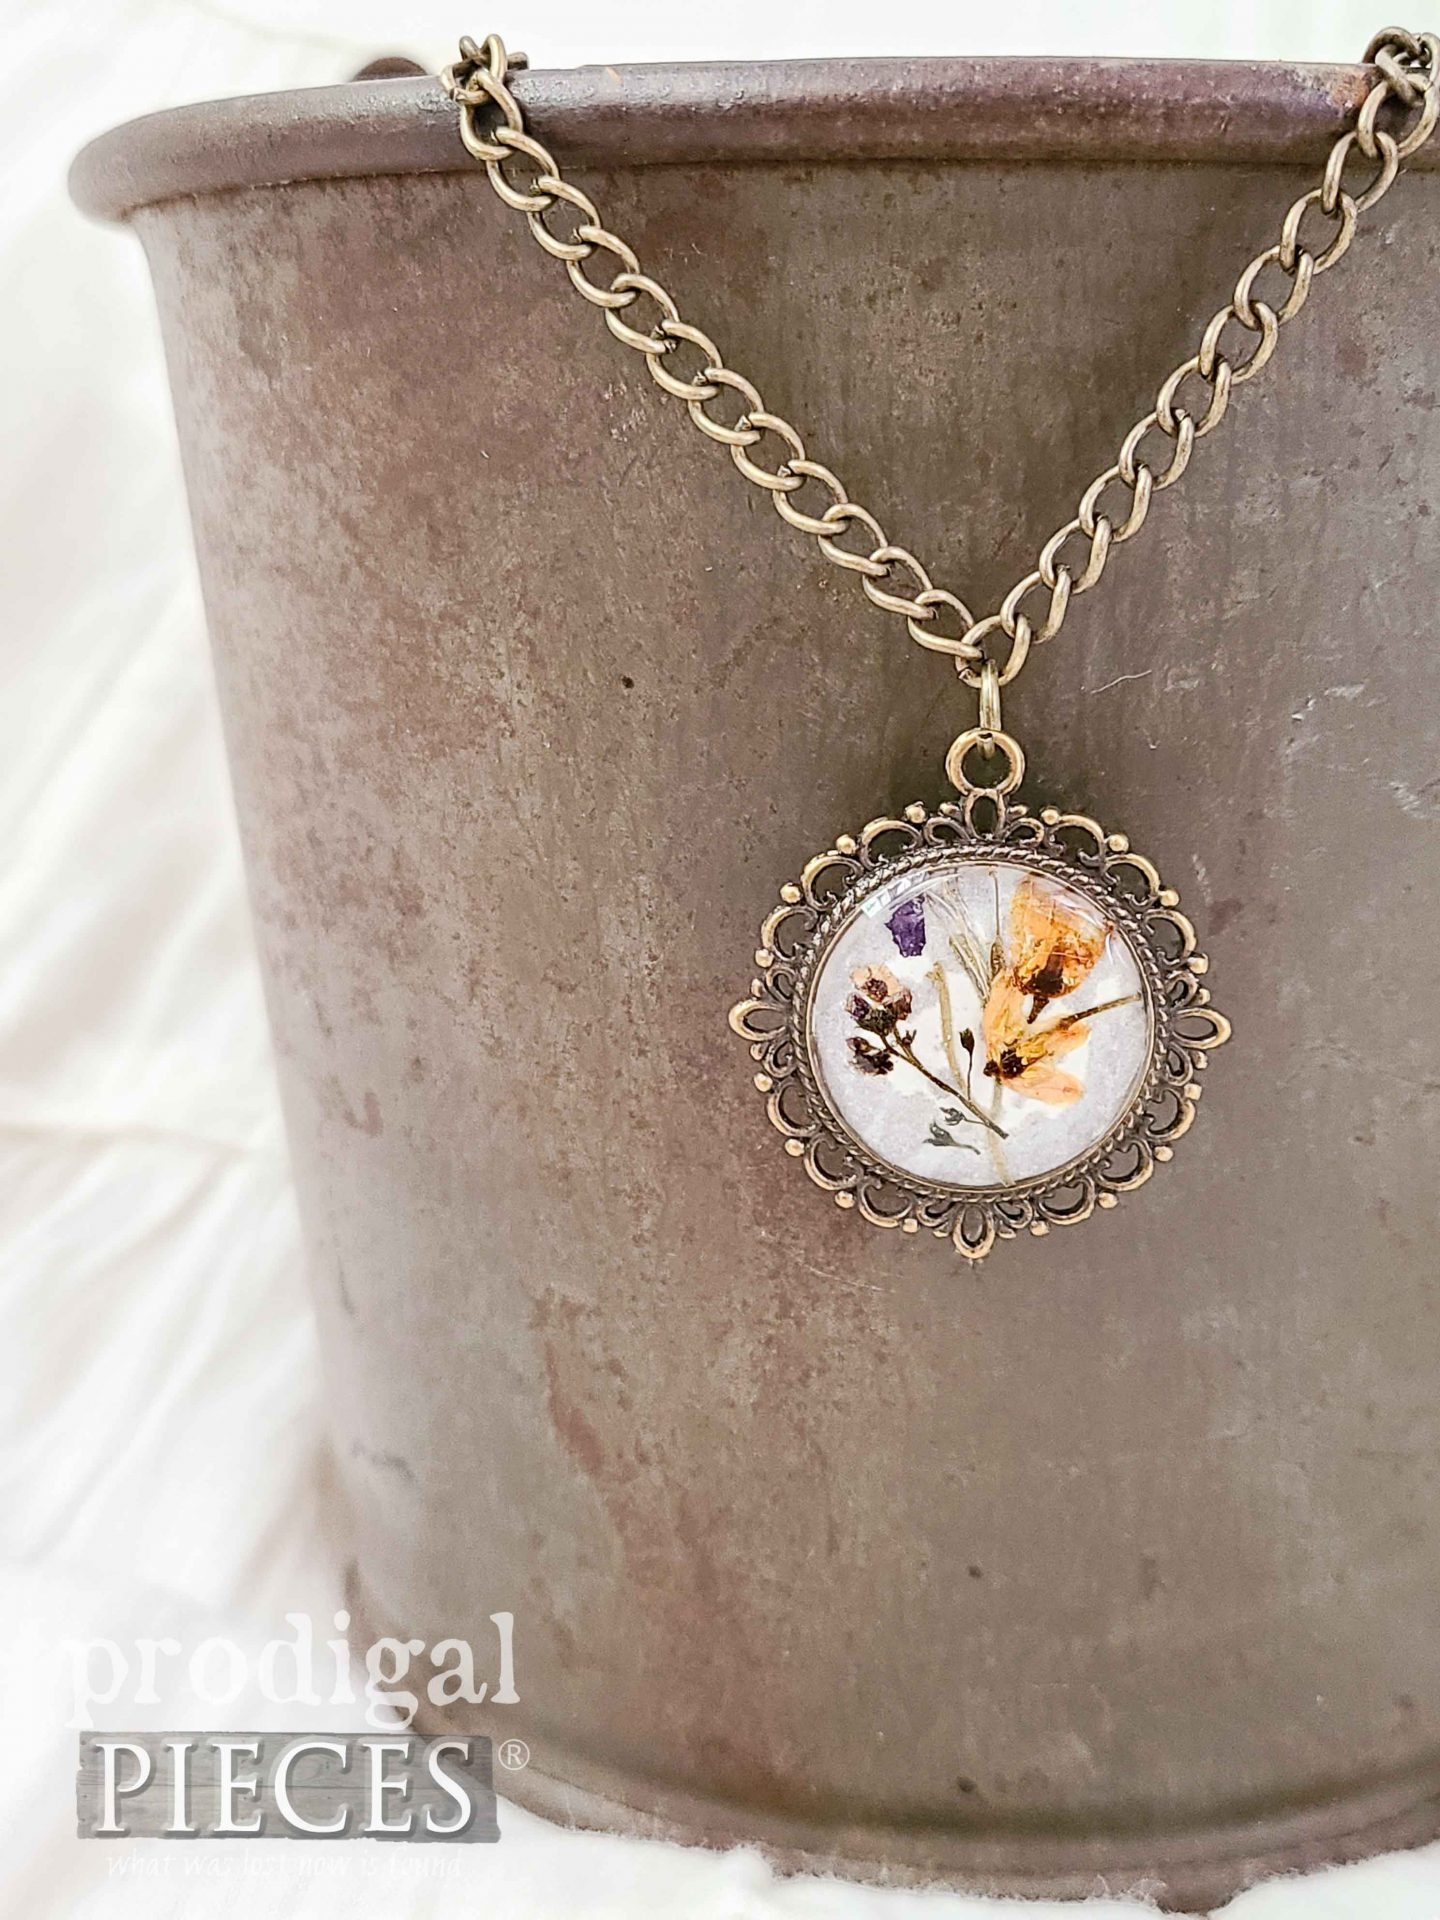 Dried Botanical Necklace Made with Resin by Larissa of Prodigal Pieces   prodigalpieces.com #prodigalpieces #necklace #jewelry #diy #crafts